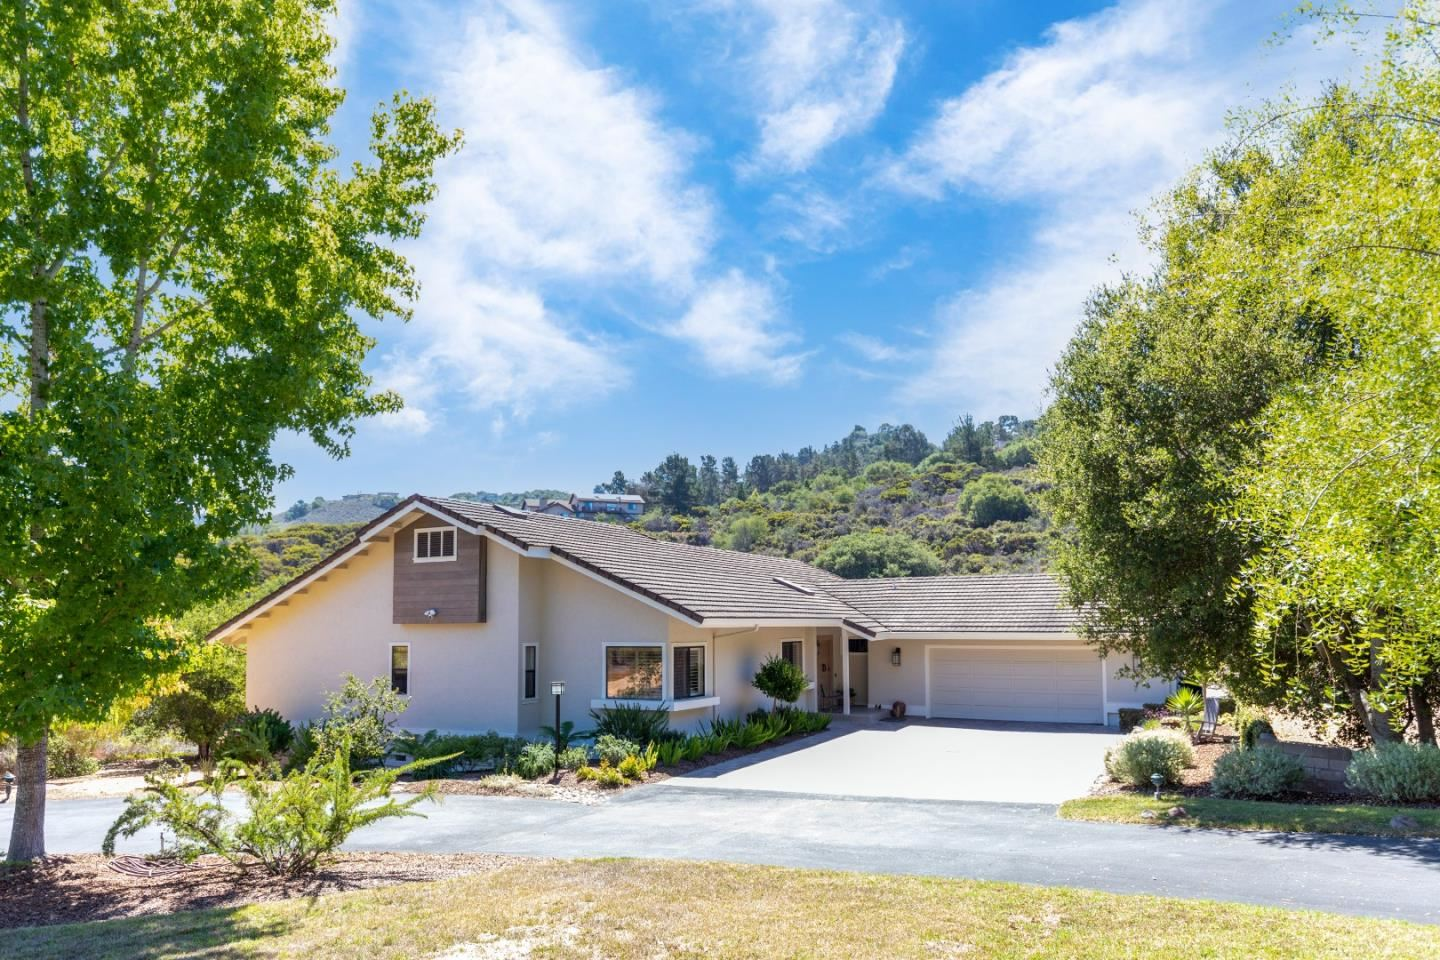 Photo for 25395 Boots Road, MONTEREY, CA 93940 (MLS # ML81860900)